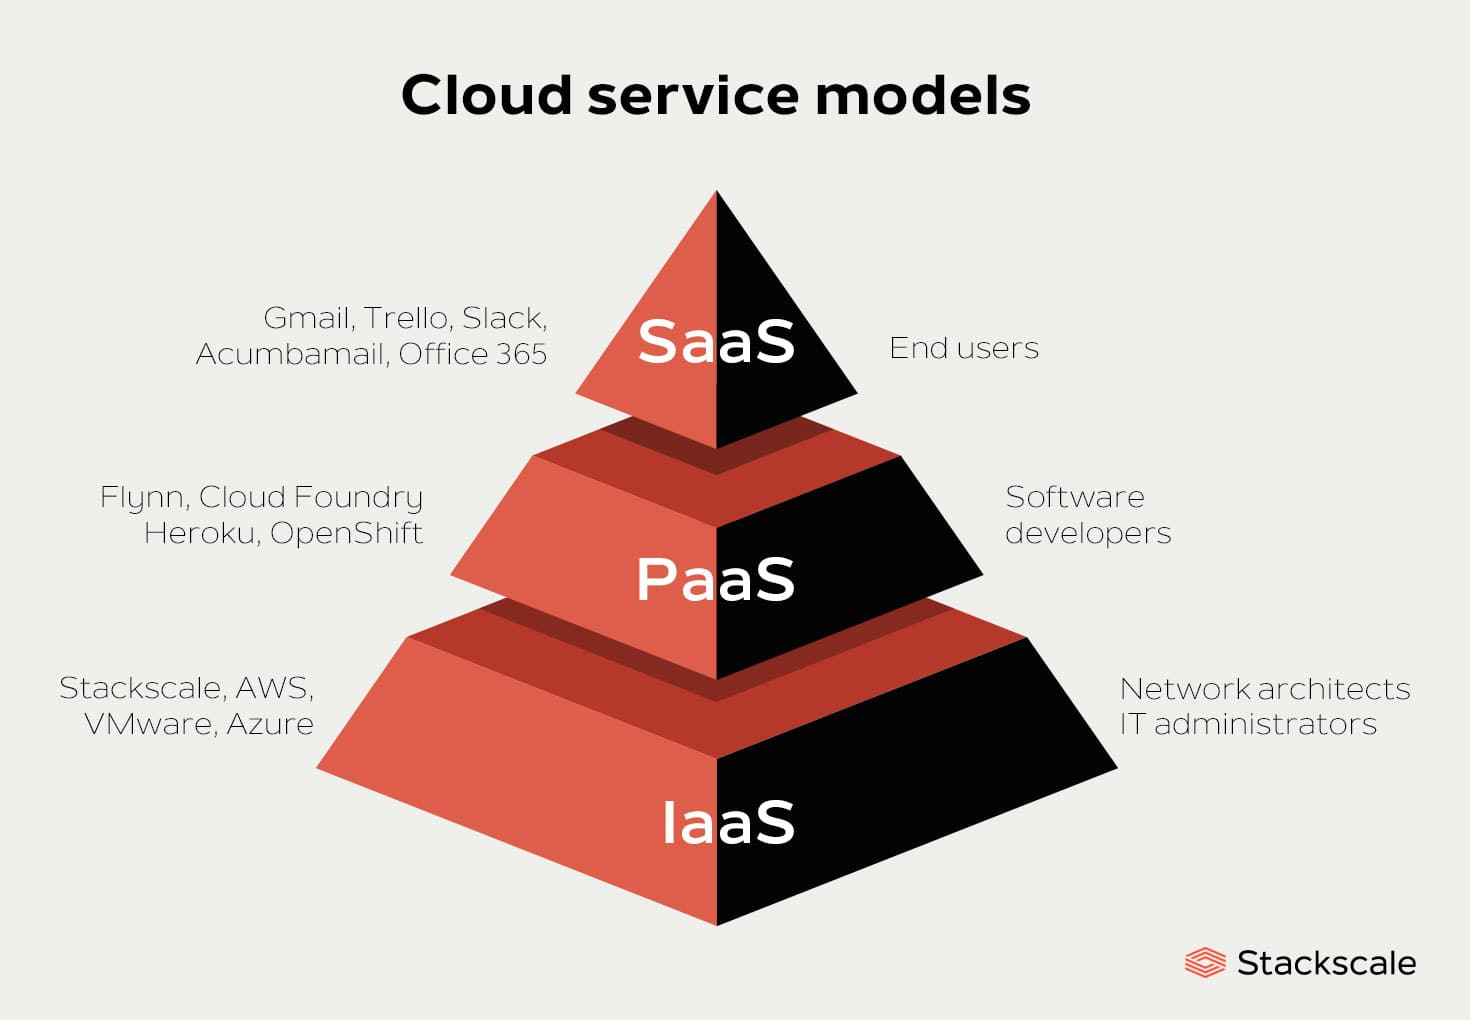 Cloud service models: SaaS, PaaS and IaaS